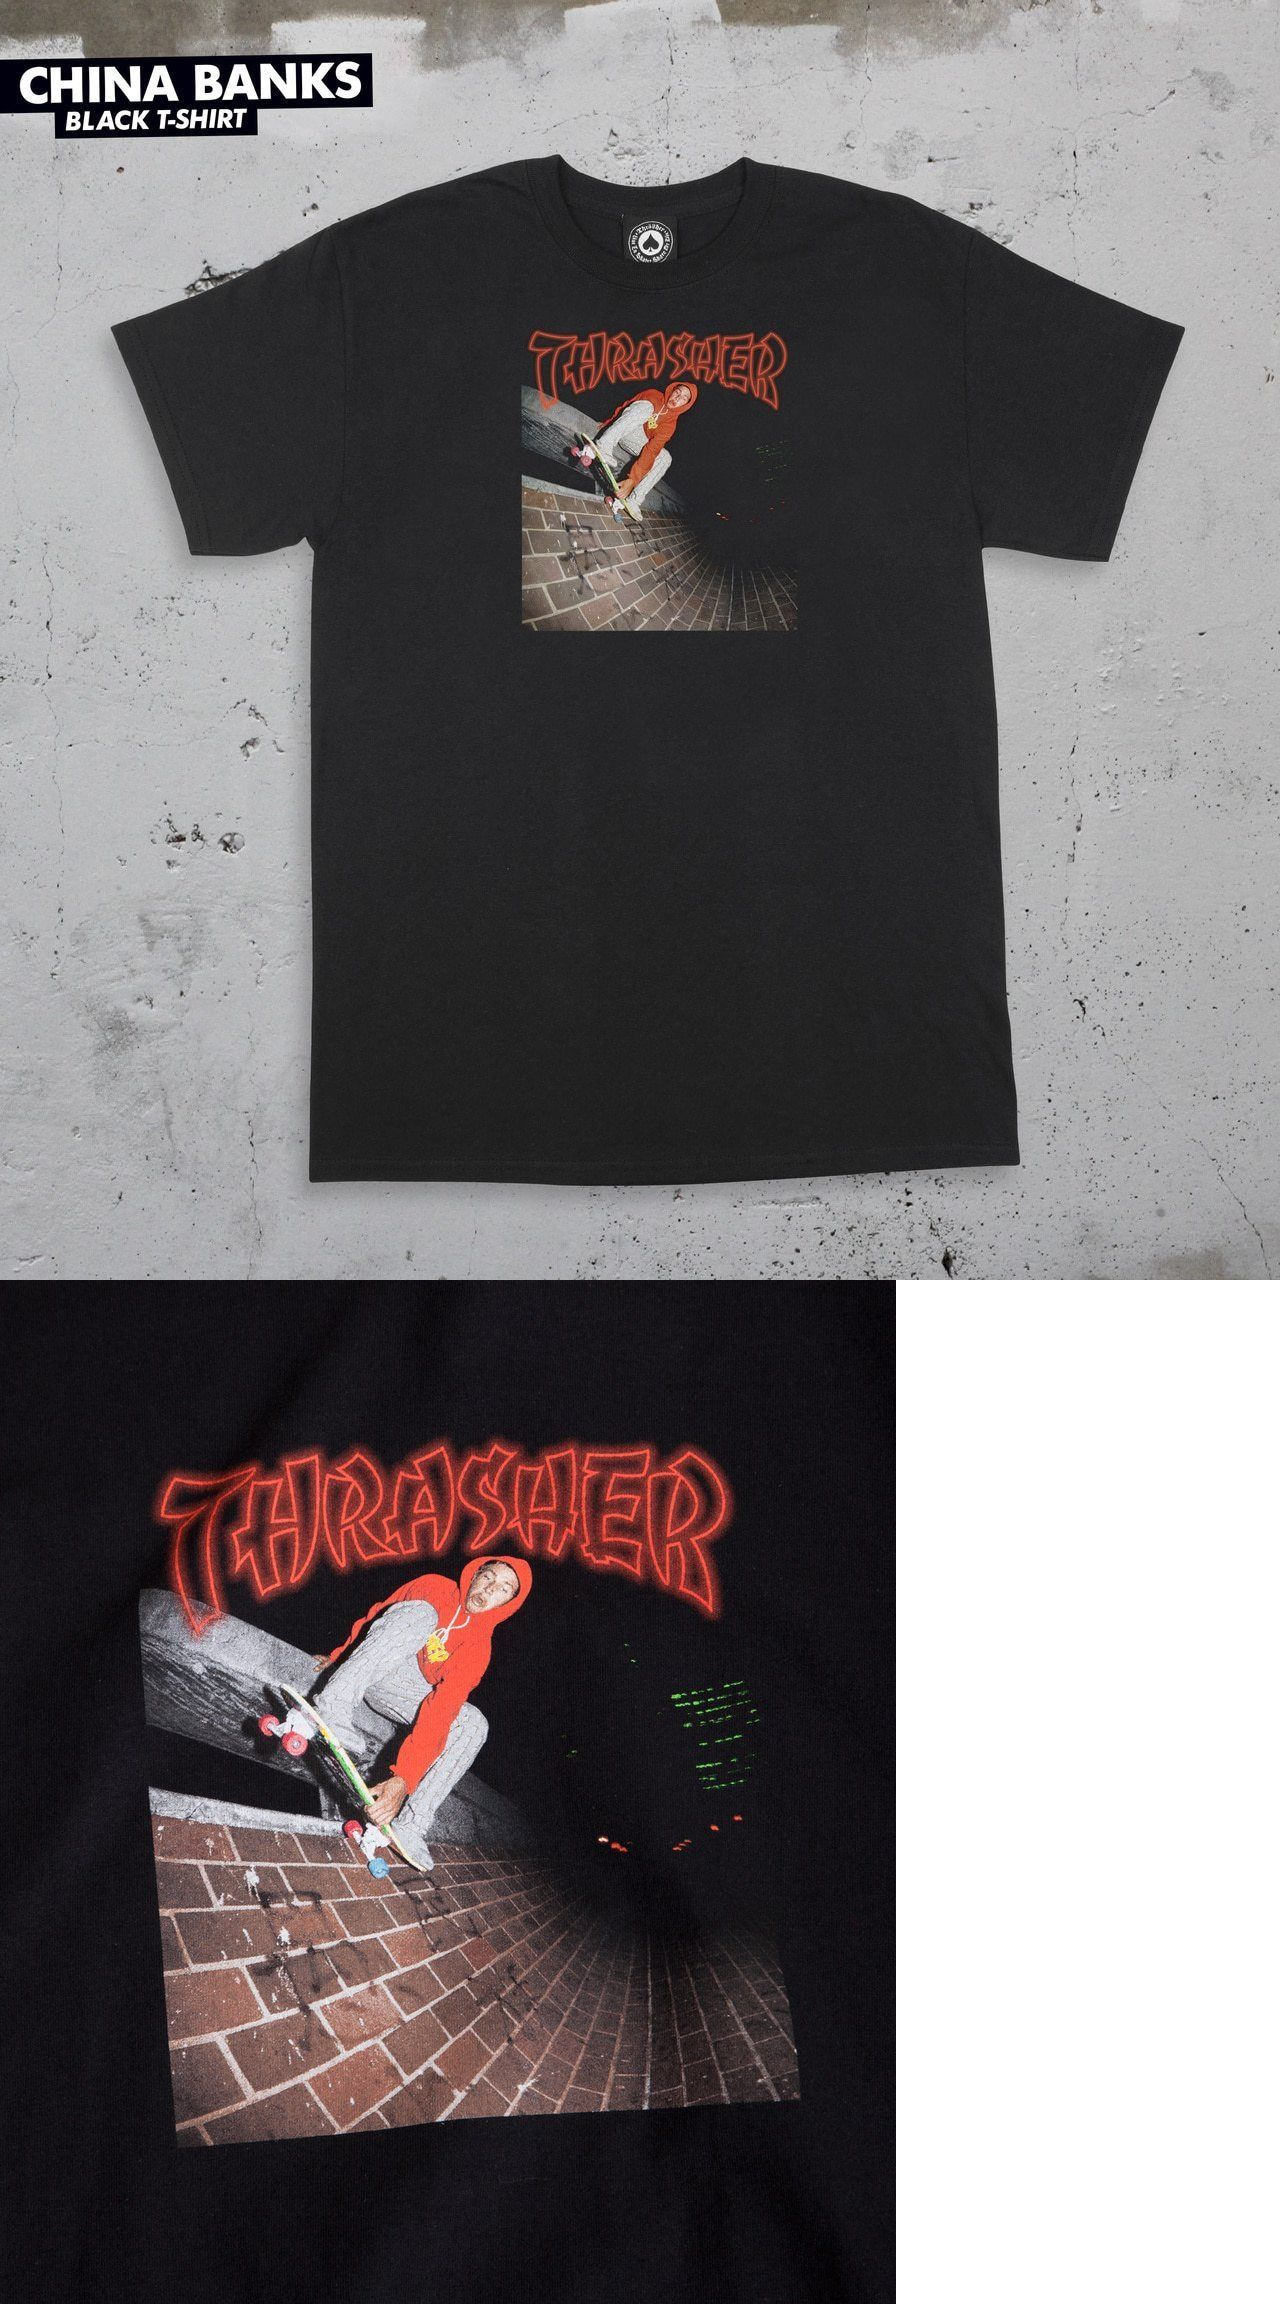 a6ae45de258b Clothing 23825  Thrasher X Mark Gonzales China Banks Gonz Photo Black  T-Shirt S M L Xl -  BUY IT NOW ONLY   24 on eBay!